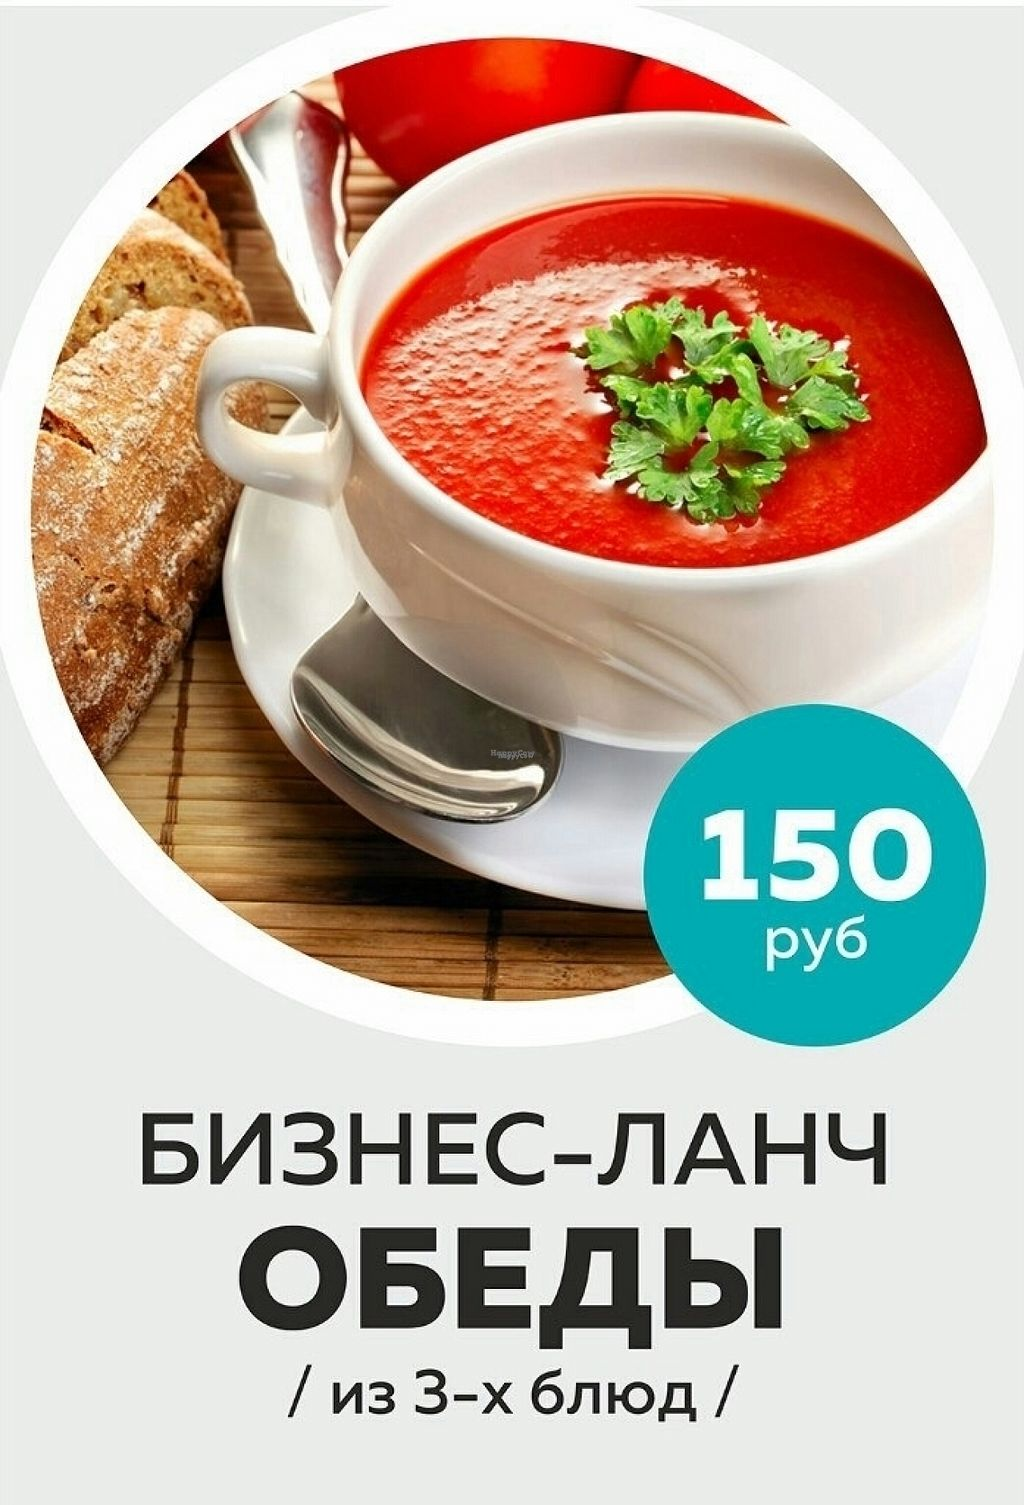 "Photo of Bhajan Cafe  by <a href=""/members/profile/EkaterinaSmirnova"">EkaterinaSmirnova</a> <br/>Business lunch - 150 rubles <br/> November 1, 2016  - <a href='/contact/abuse/image/80478/185838'>Report</a>"